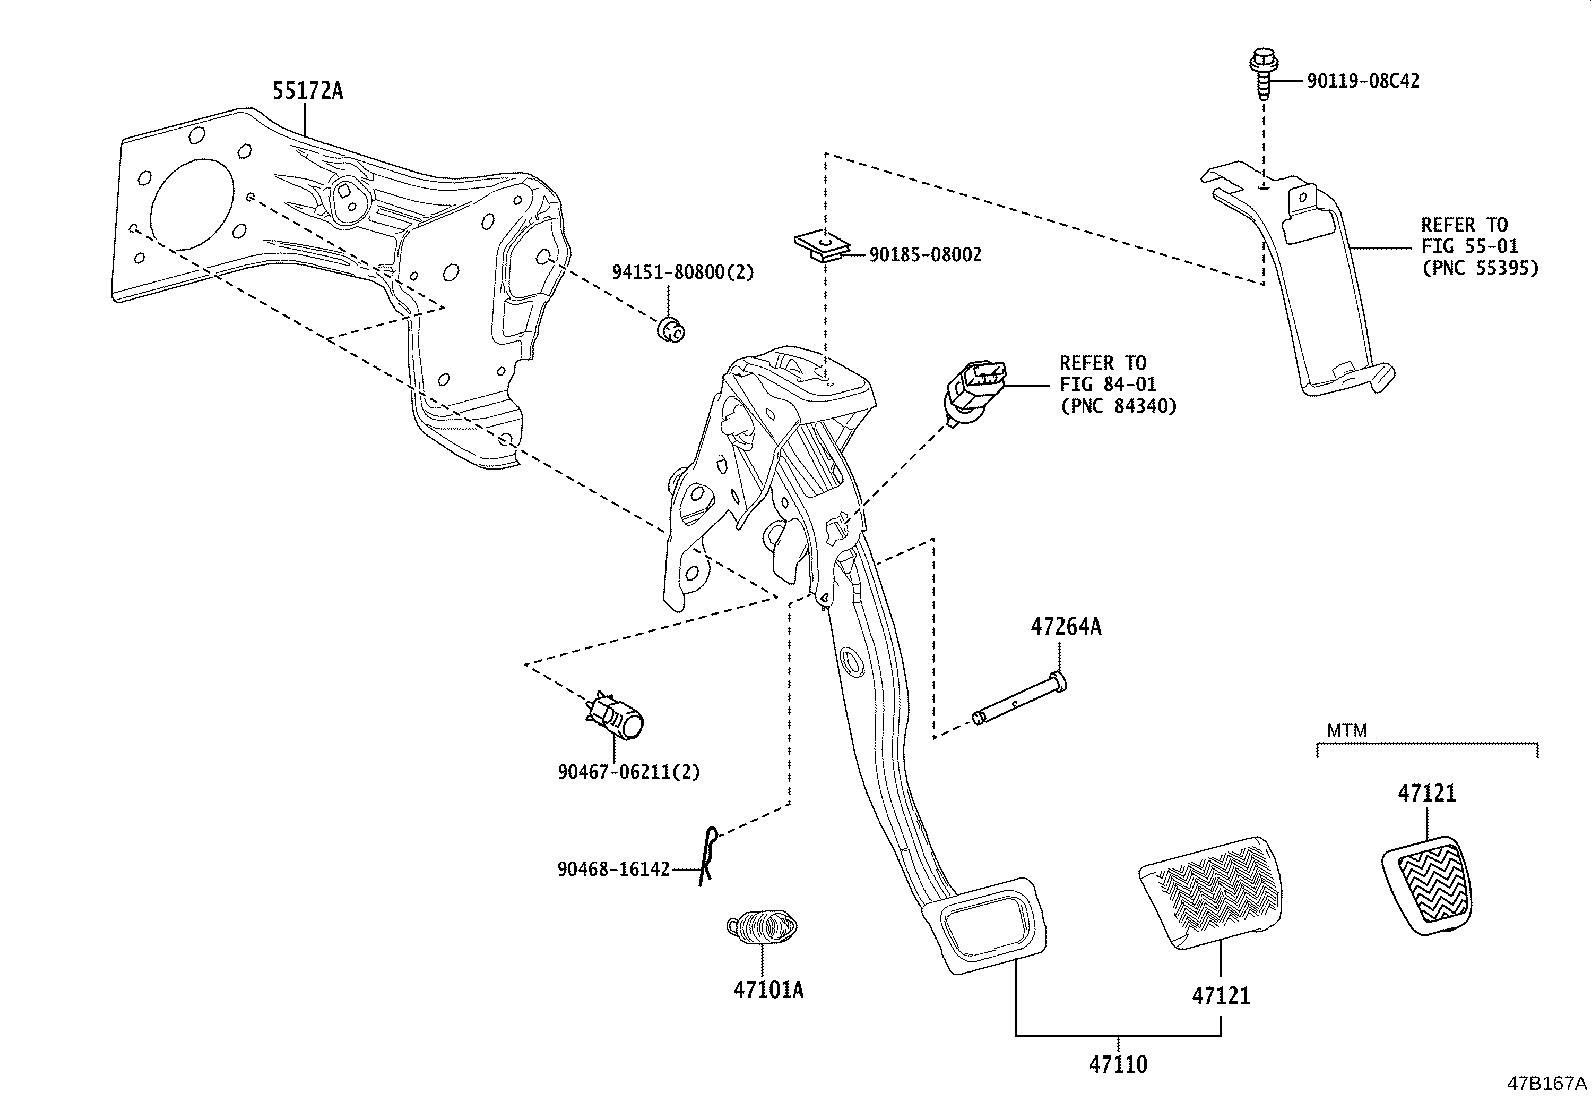 Toyota Corolla Hatchback Support Assembly Brake Pedal